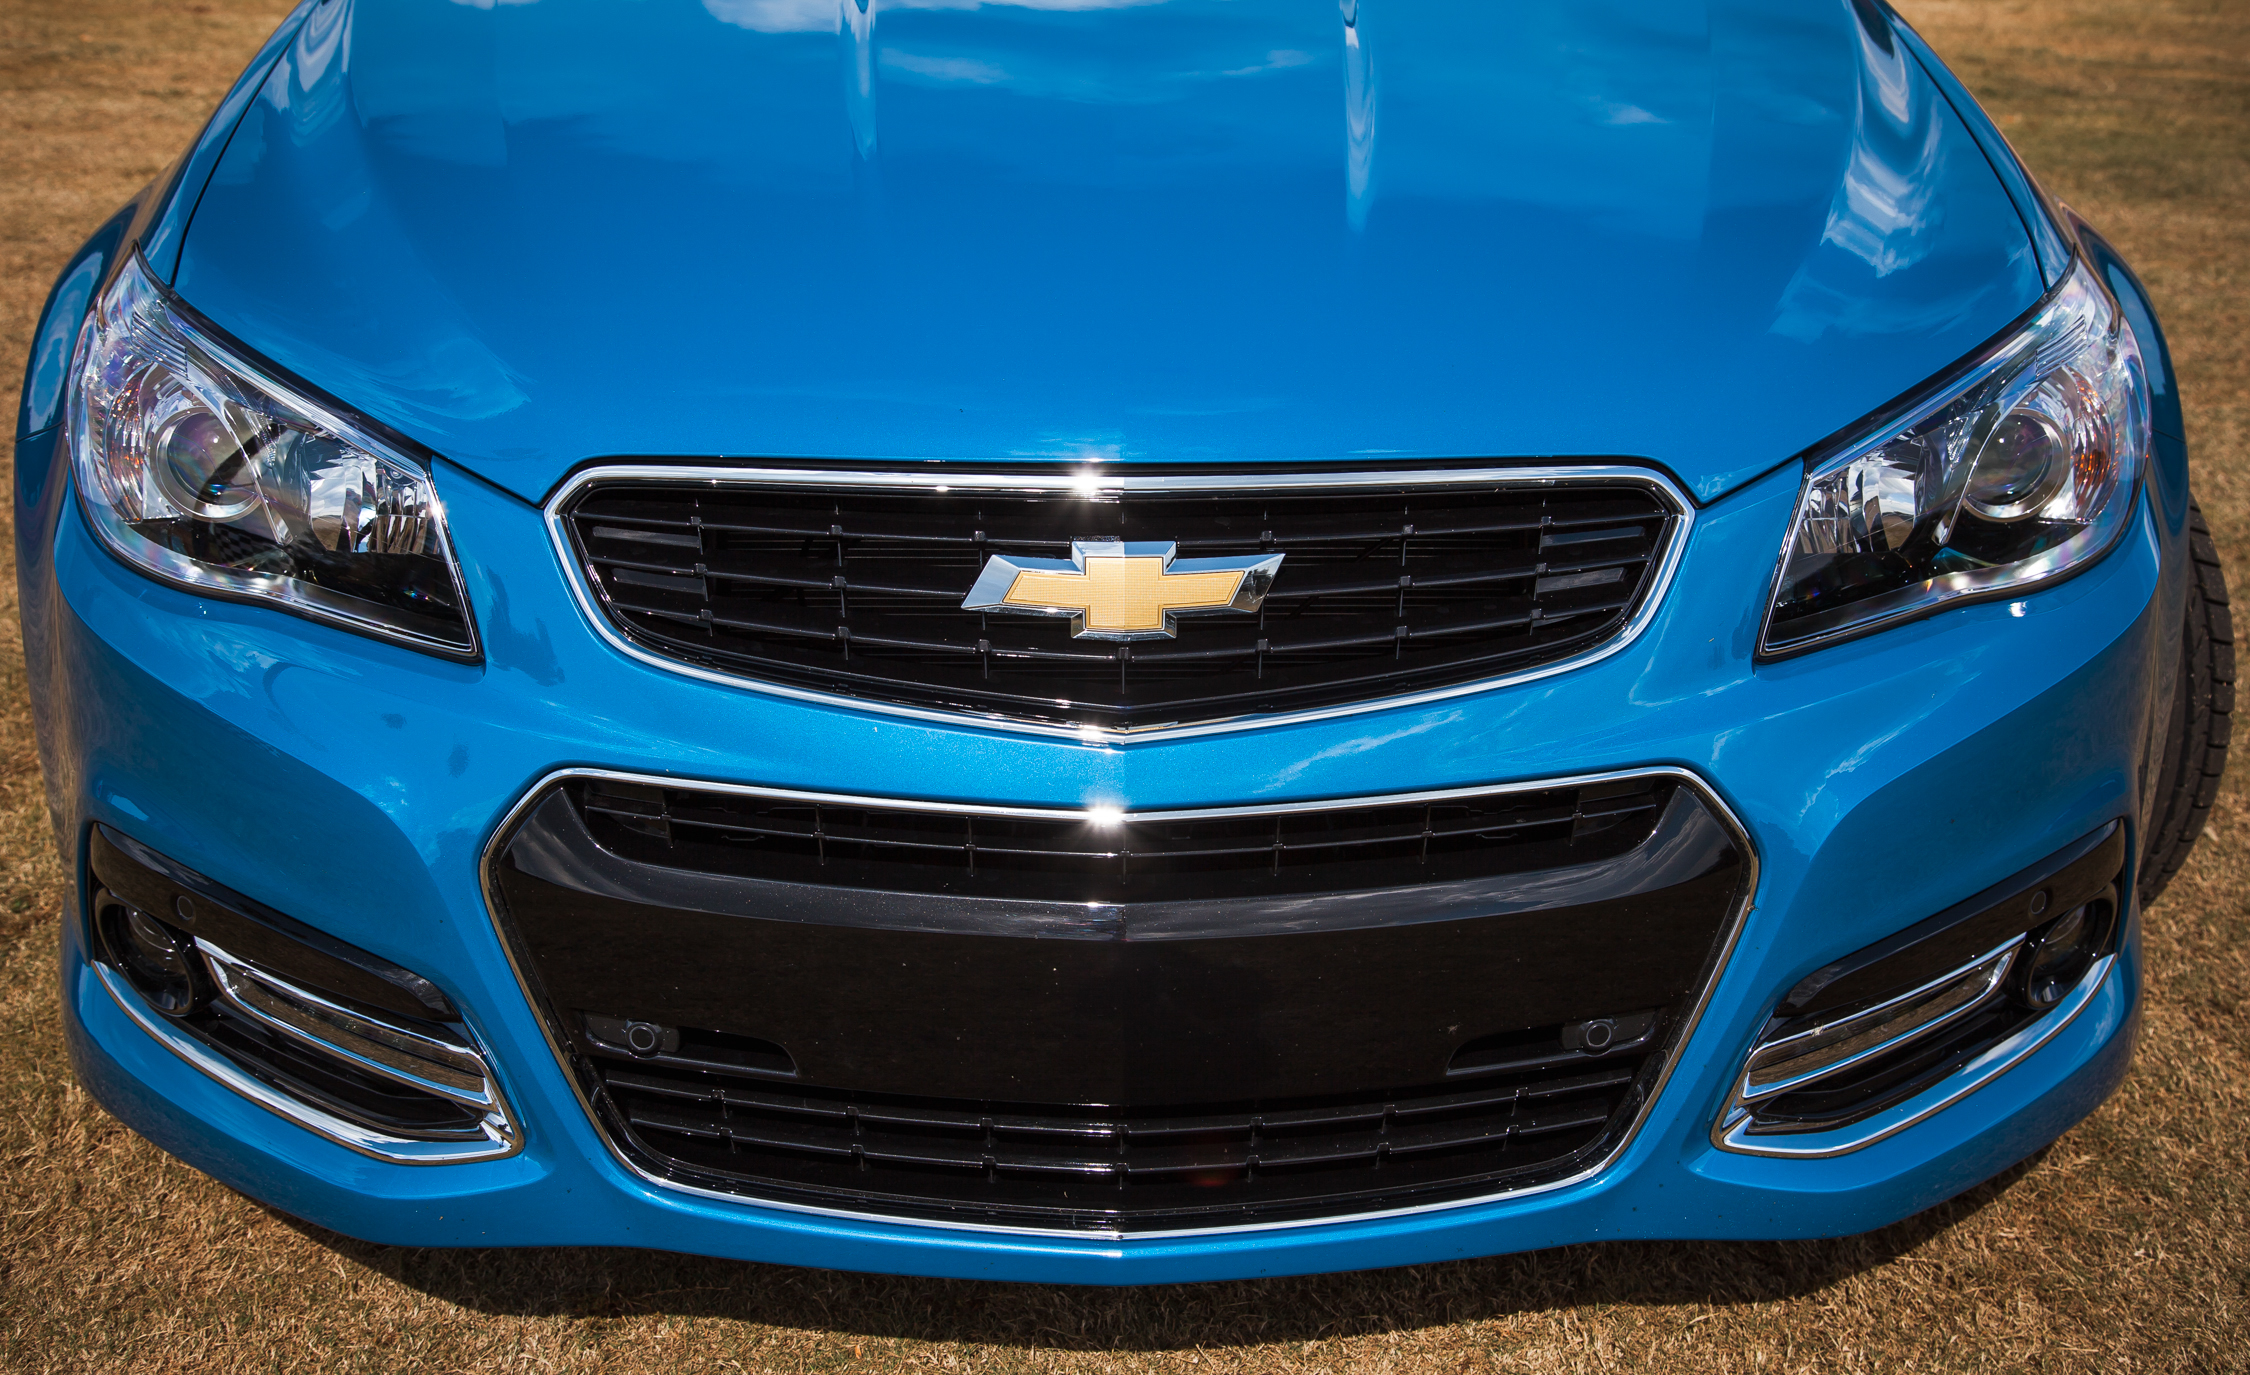 2015 Chevrolet SS Exterior Front Bumper and Grille